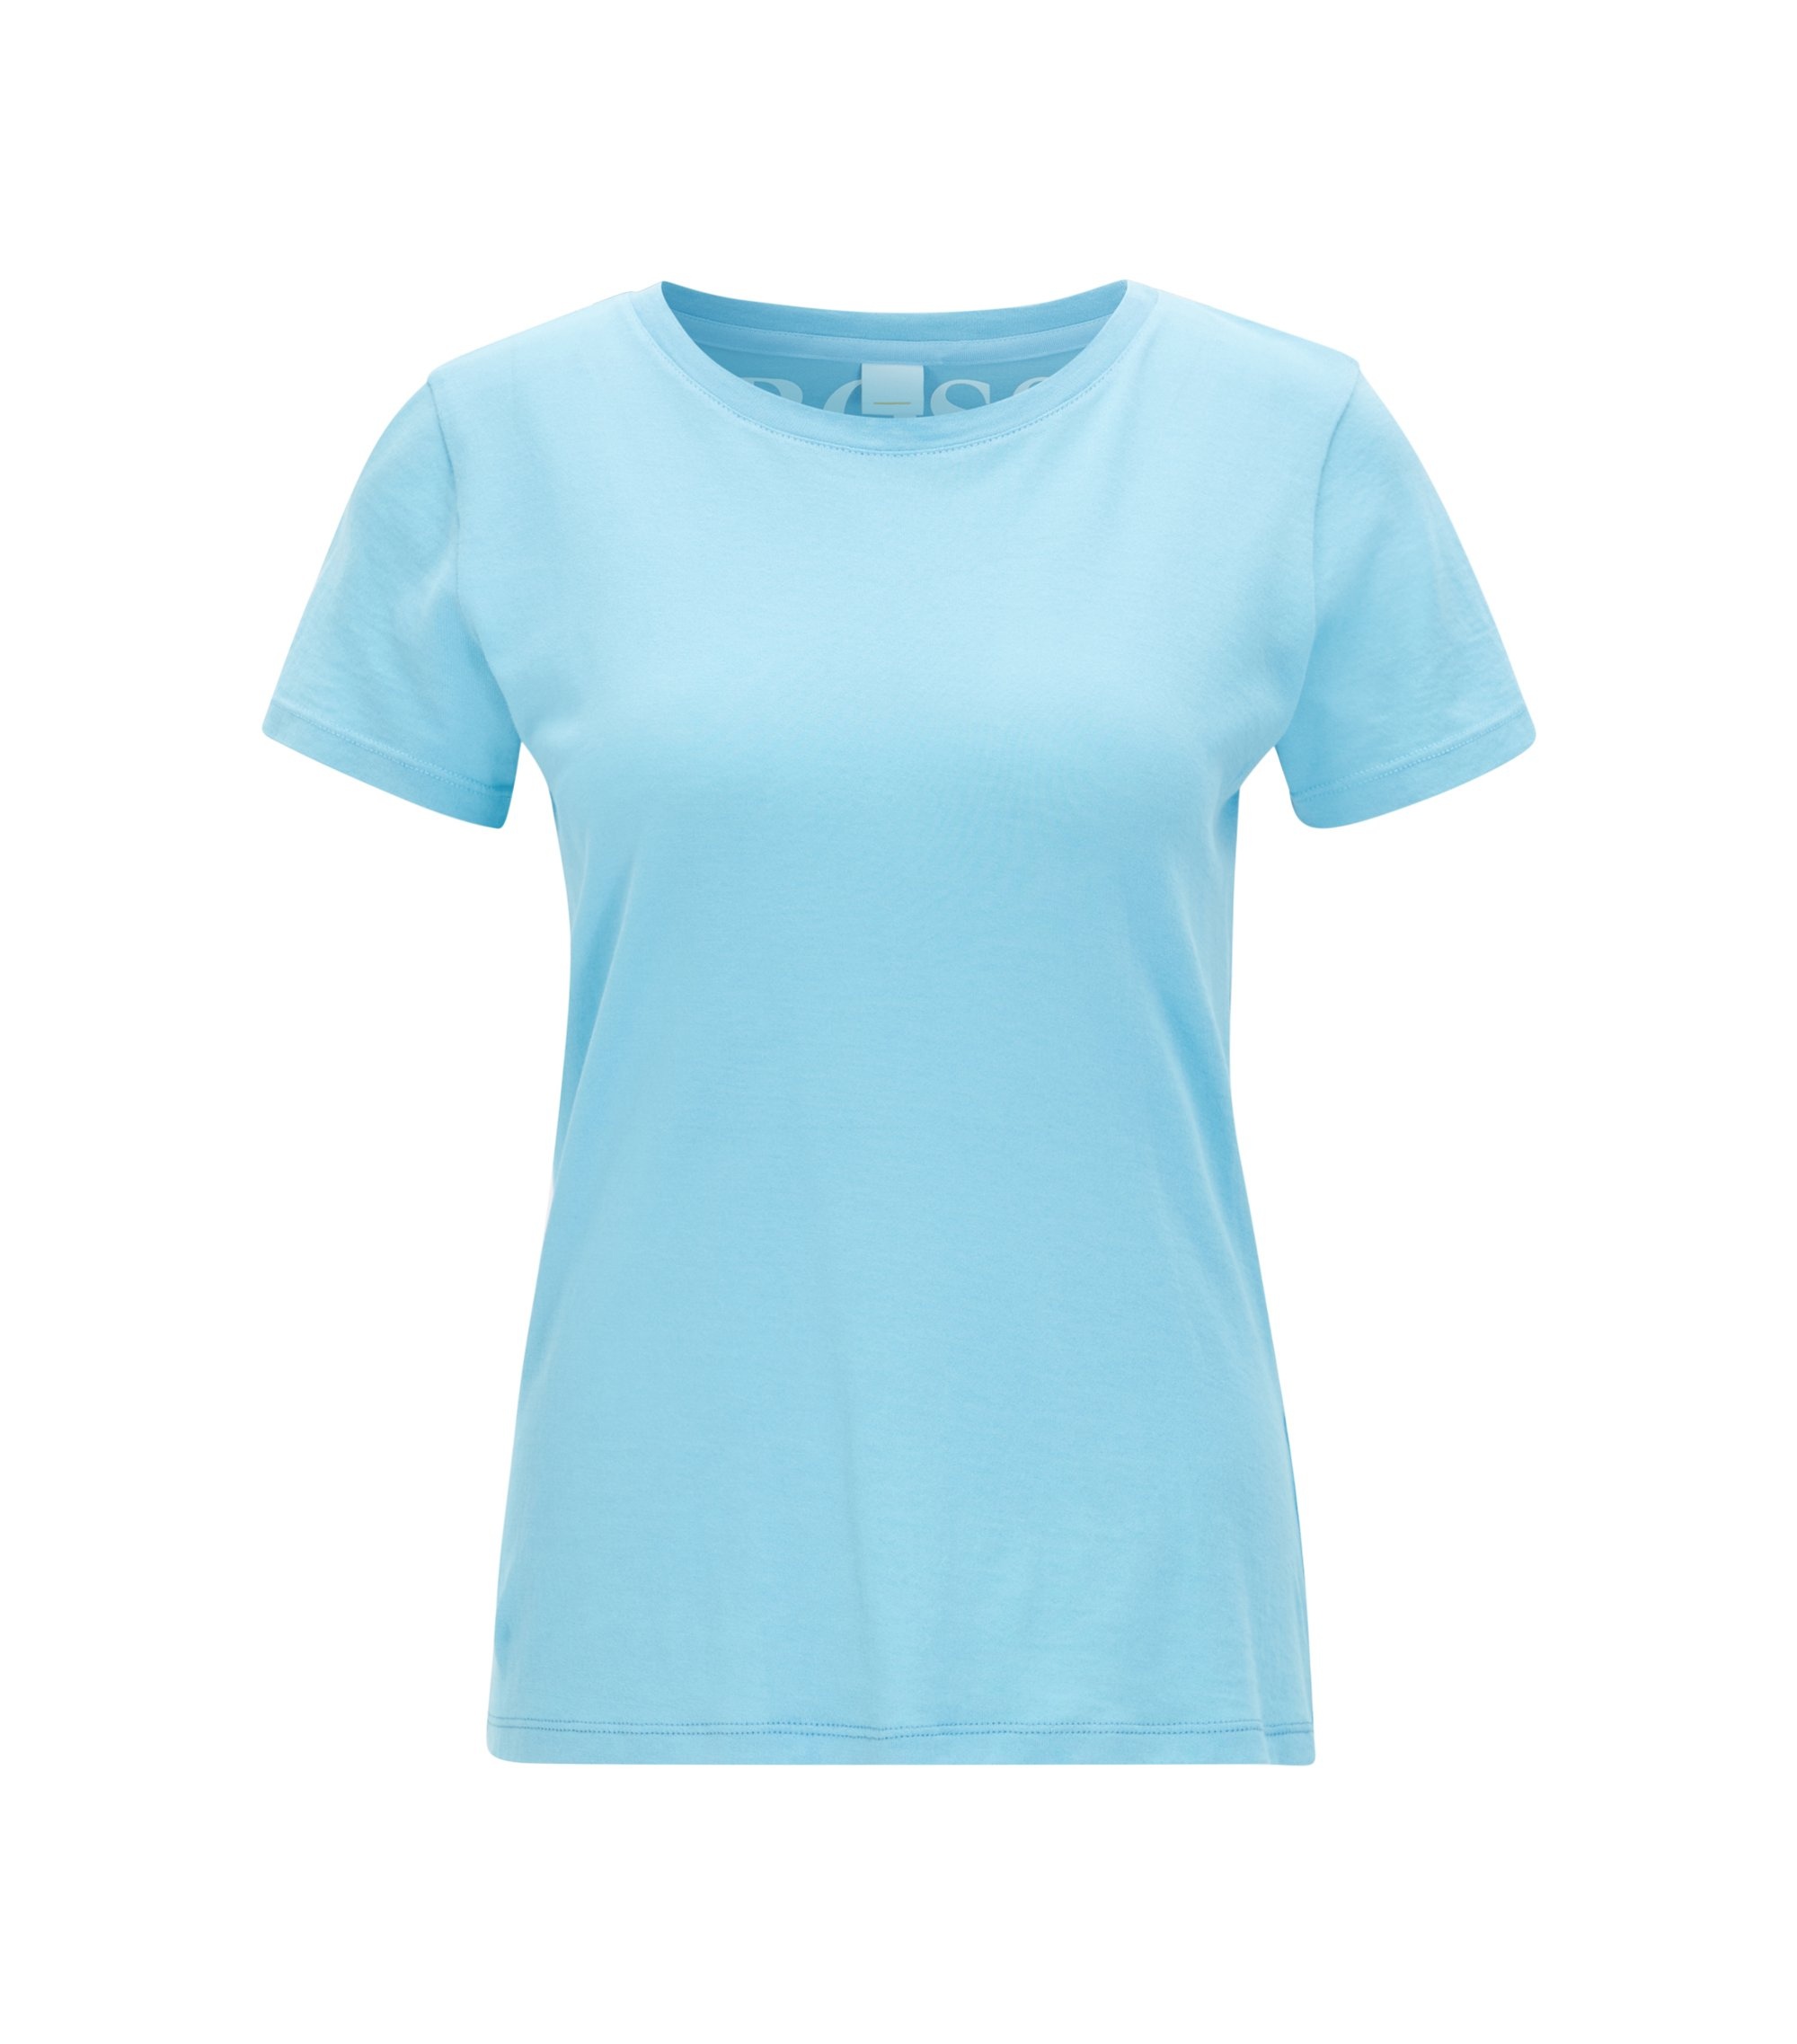 T-shirt Slim Fit en jersey simple de coton, Bleu vif